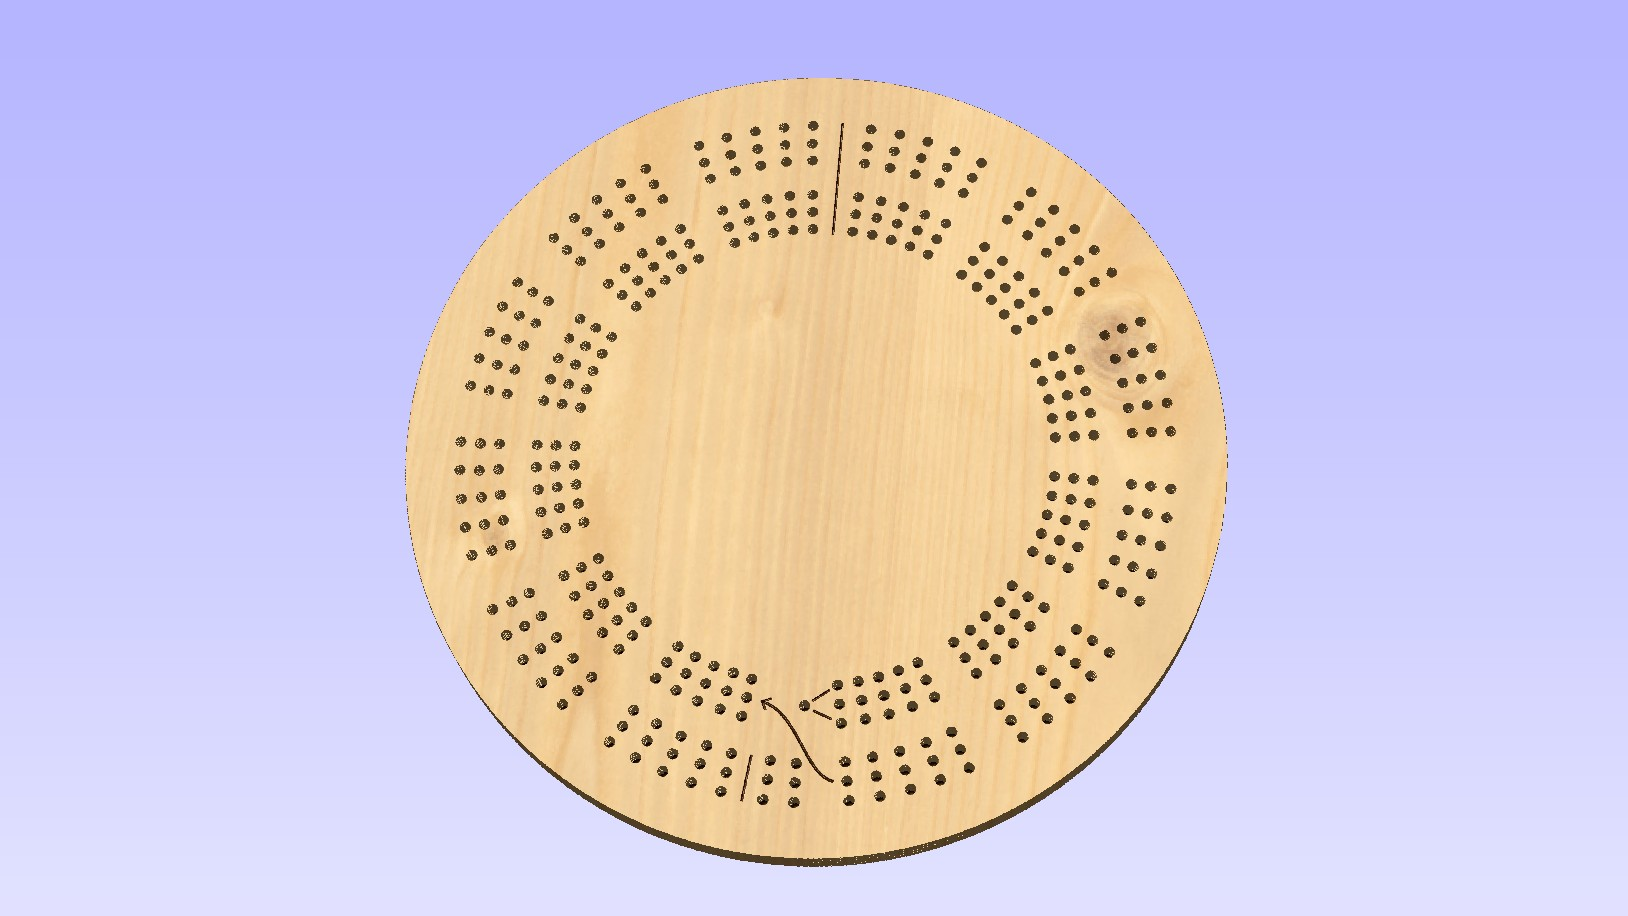 photo about Printable Cribbage Board called 15 Inch Spherical Big 3 Keep track of Template